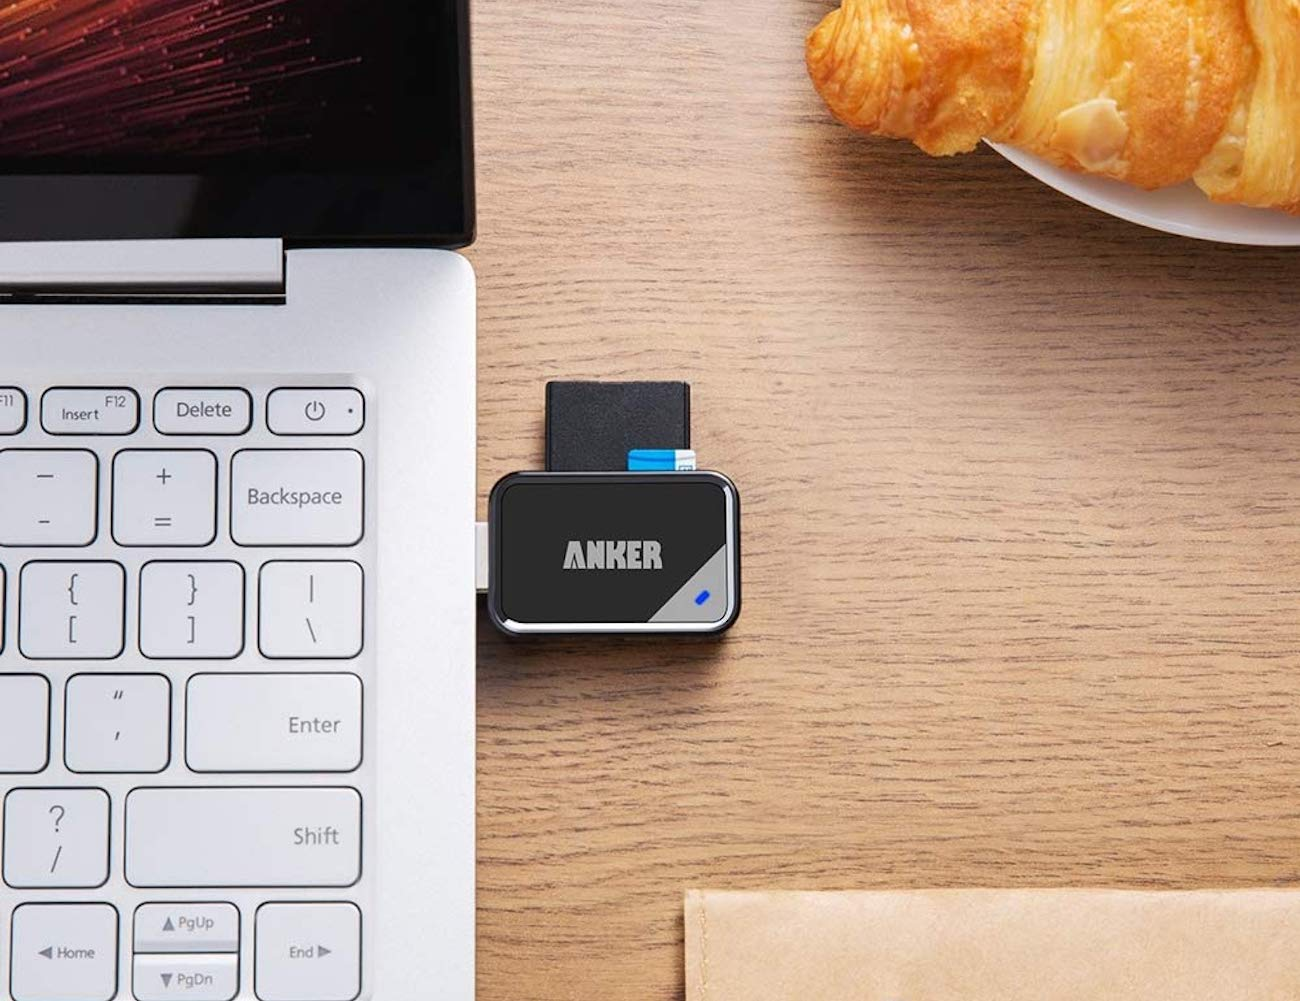 Anker USB 3.0 SD Card Reader Dual-Slot Data Transfer Device lets you simultaneously use two cards